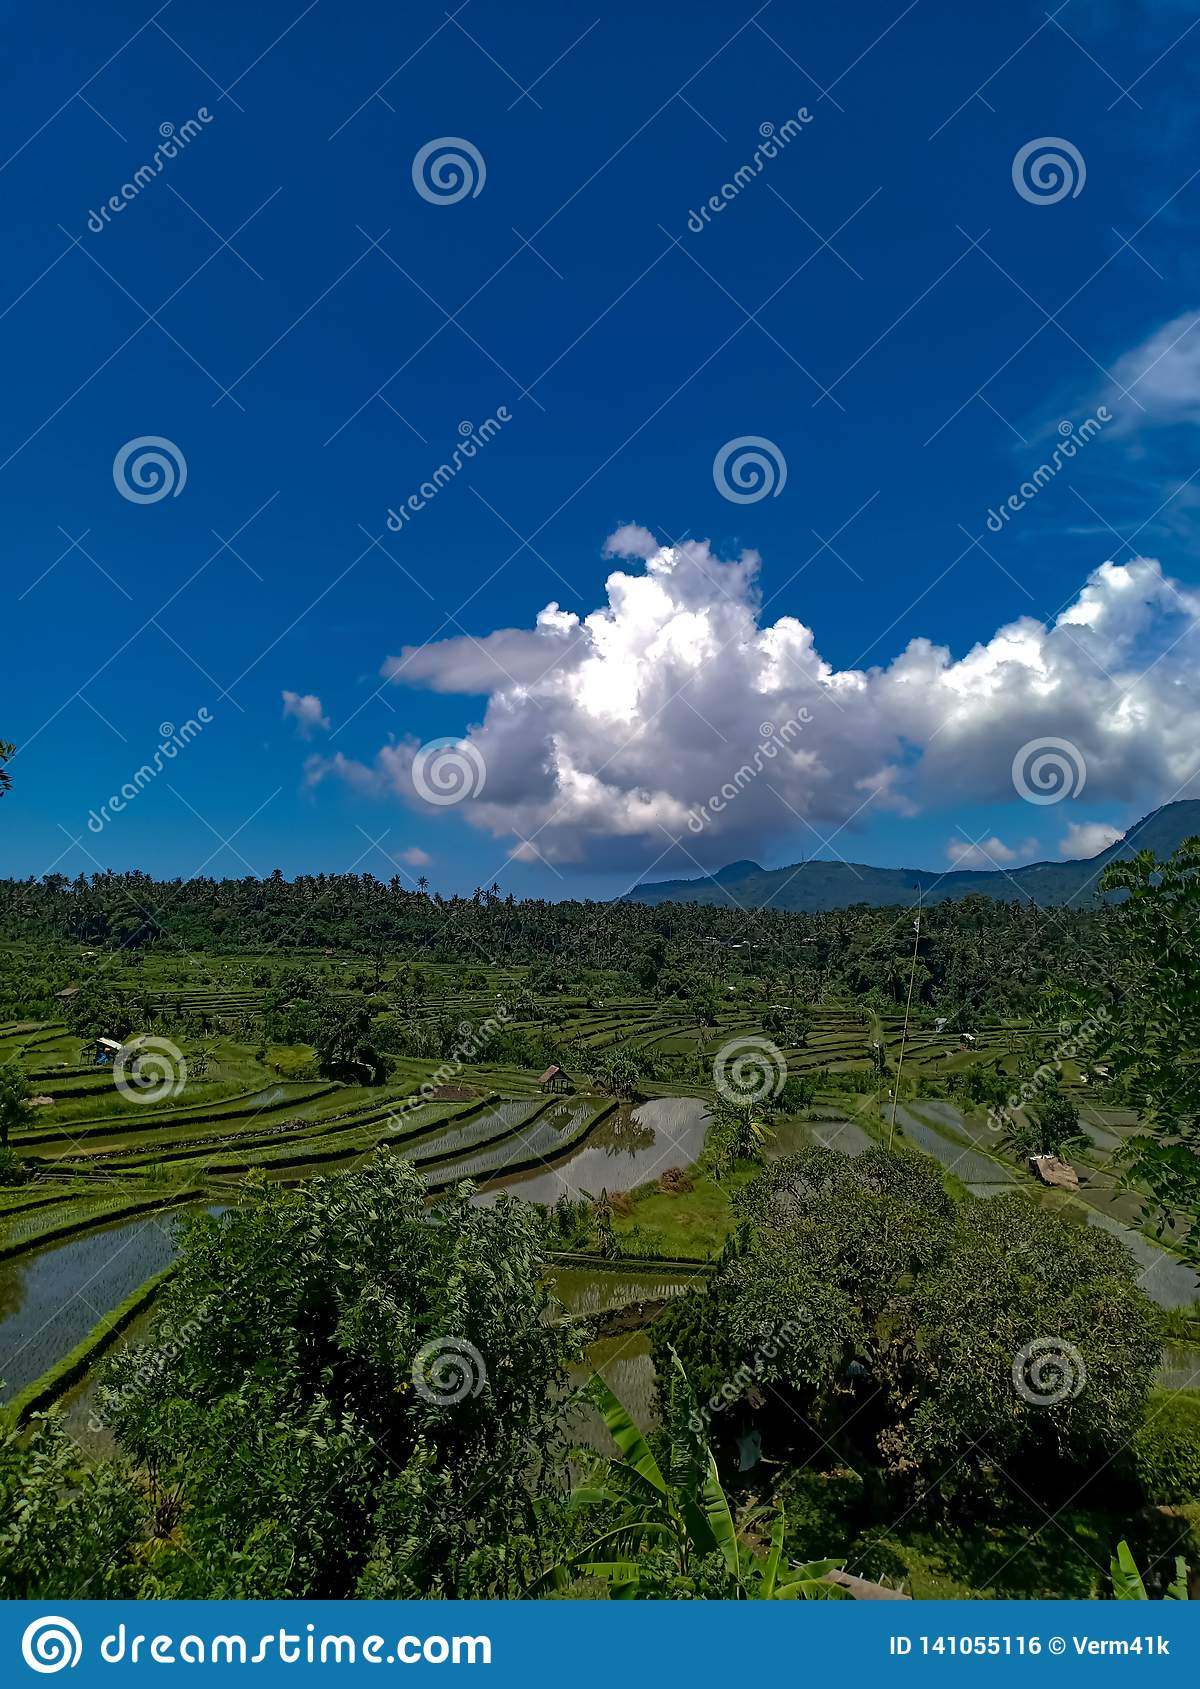 Beautful View On Rice Terraces In Bali Island Stock Photo Image Of China Farm 141055116